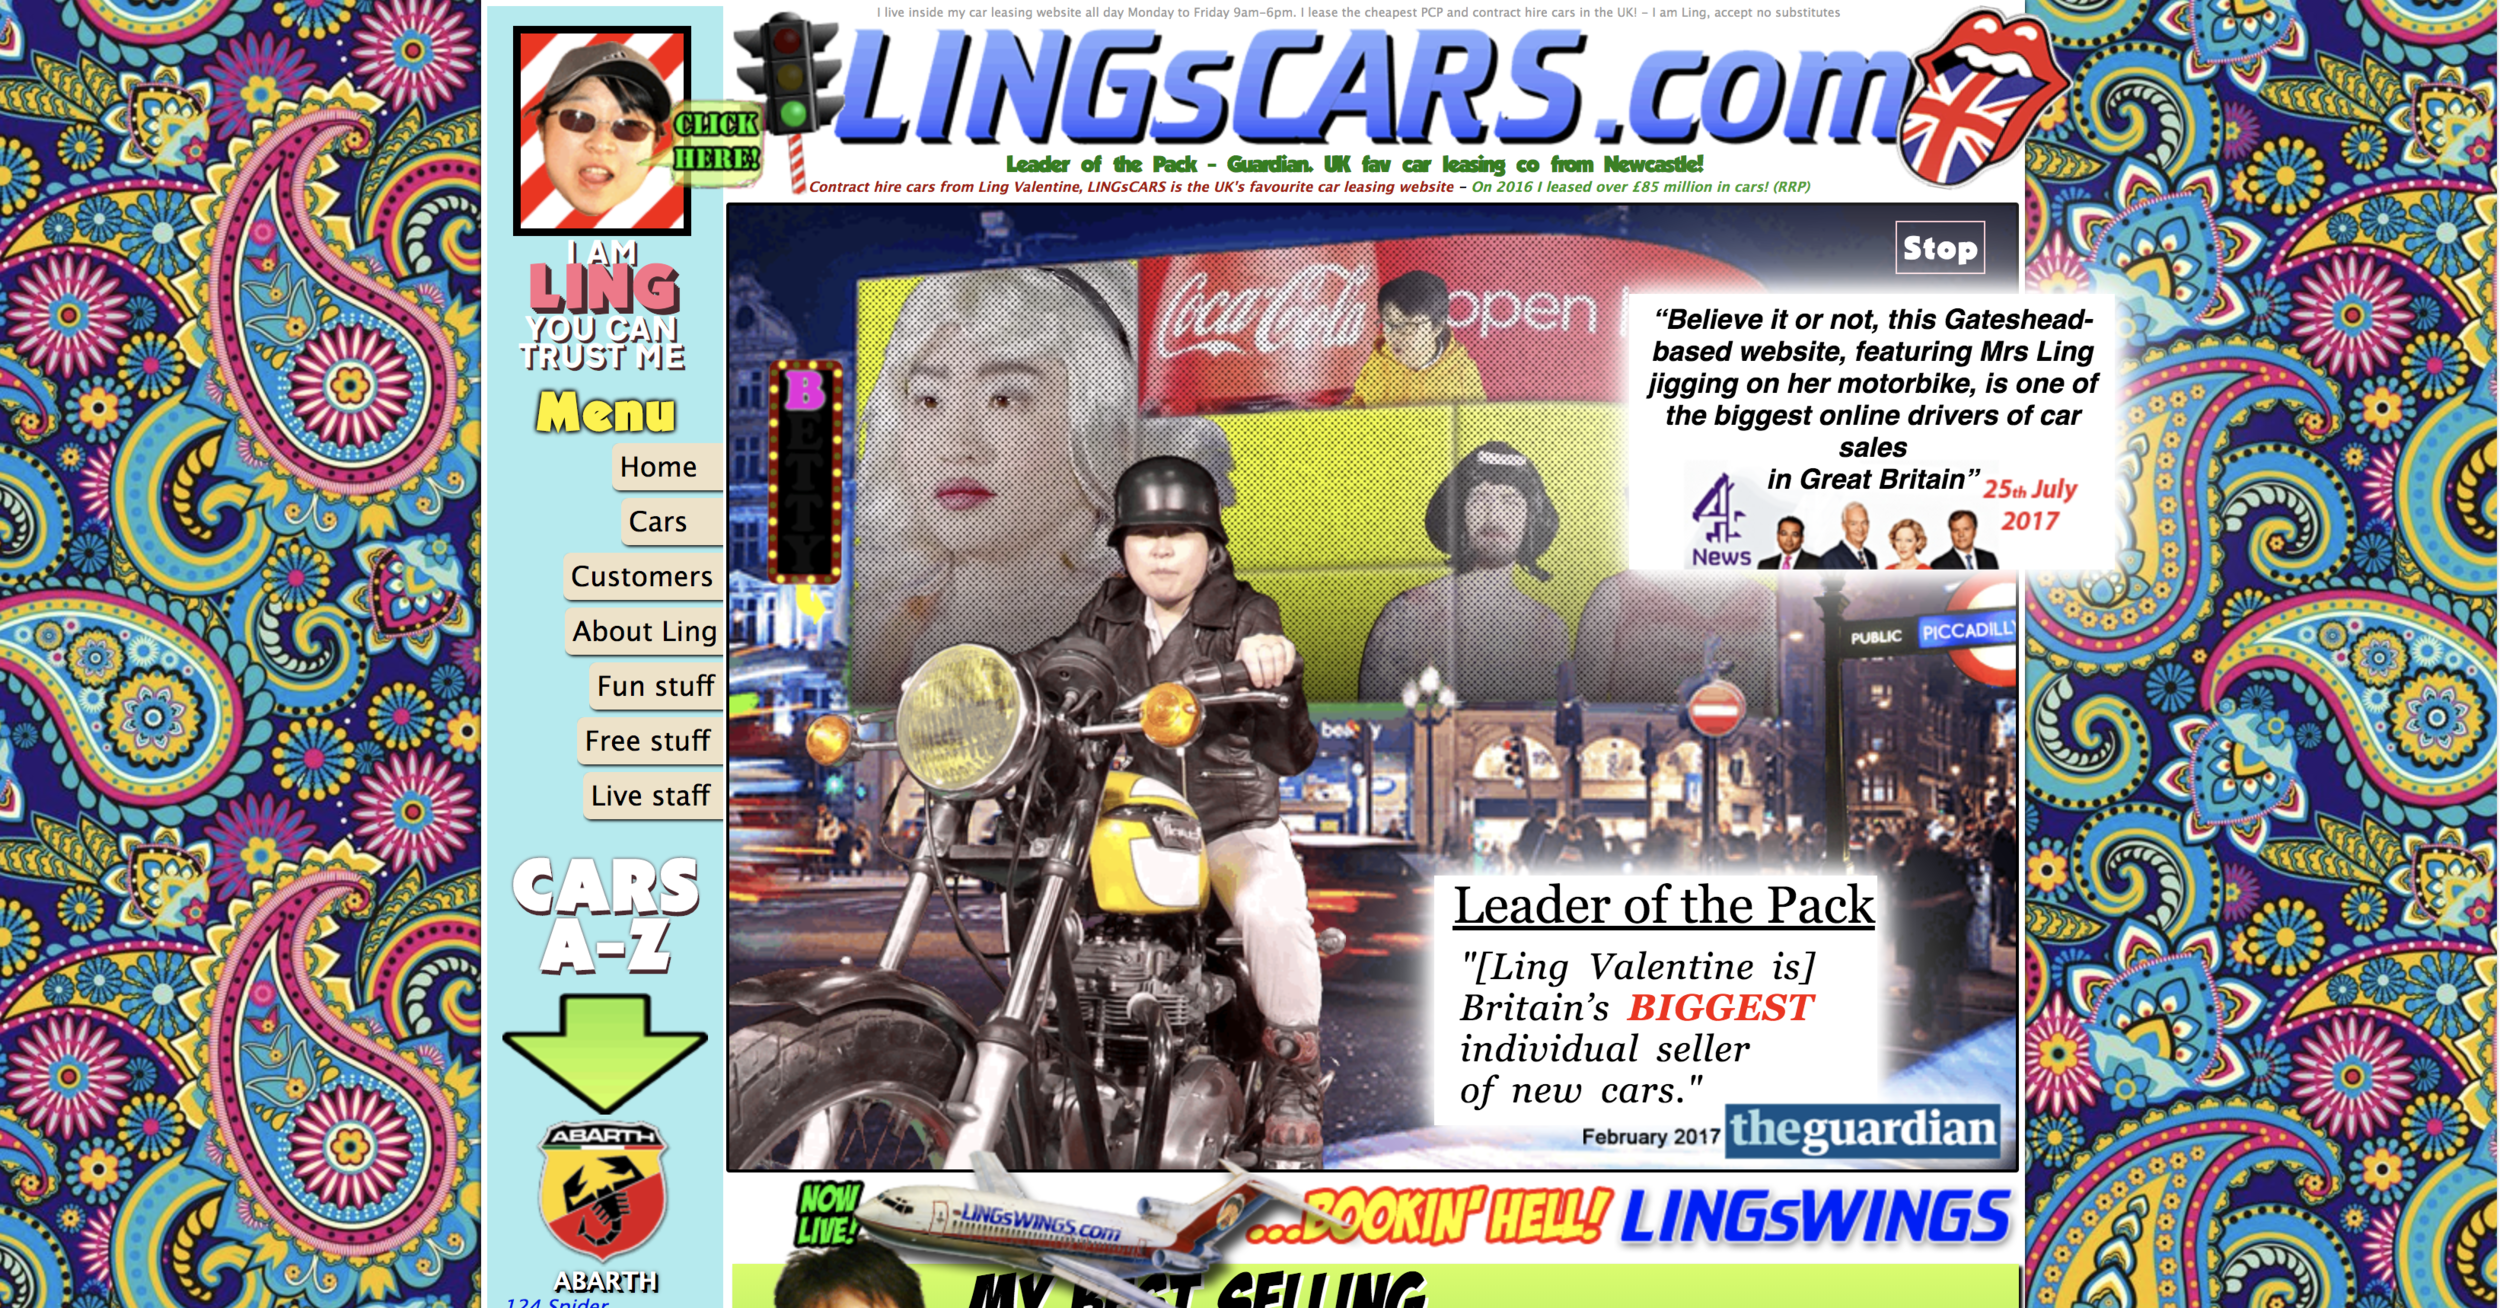 You don't to end up with a website like this … or do you? Despite the hilarious look and feel,  https://www.lingscars.com/  generates rather a lot of money for its owner.